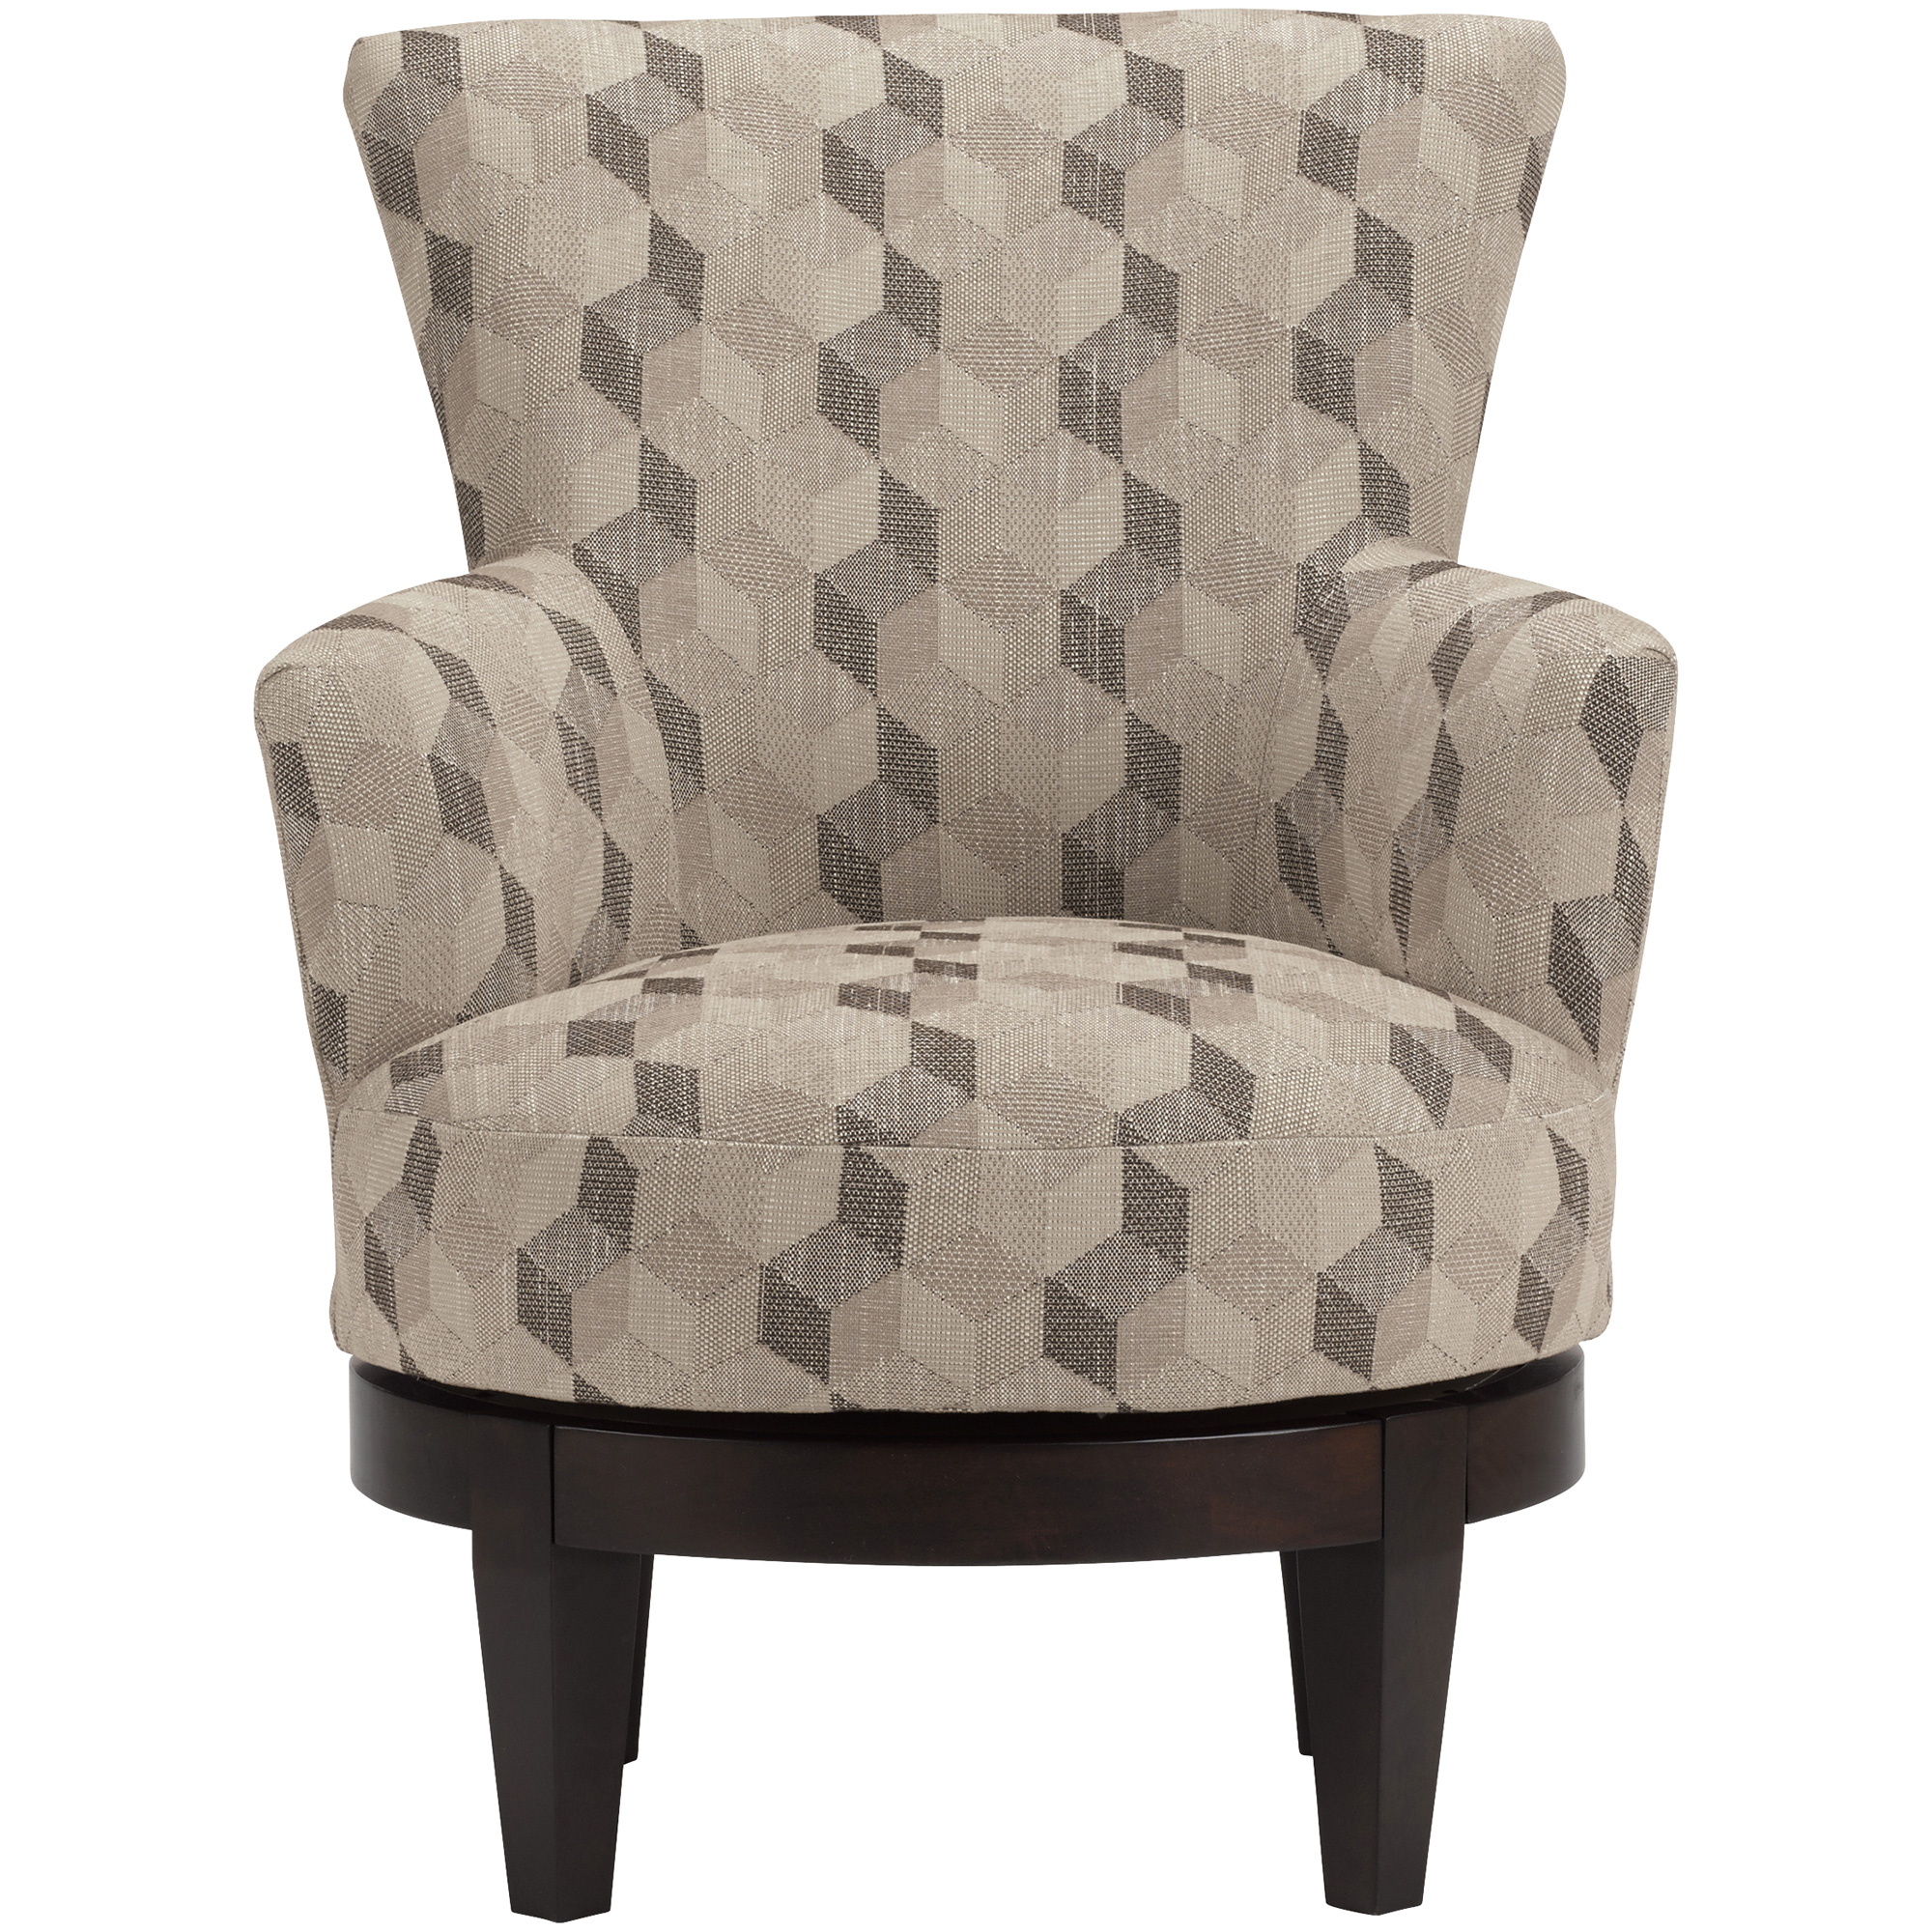 Best Home Furnishings | Justine Tan Swivel Accent Chair